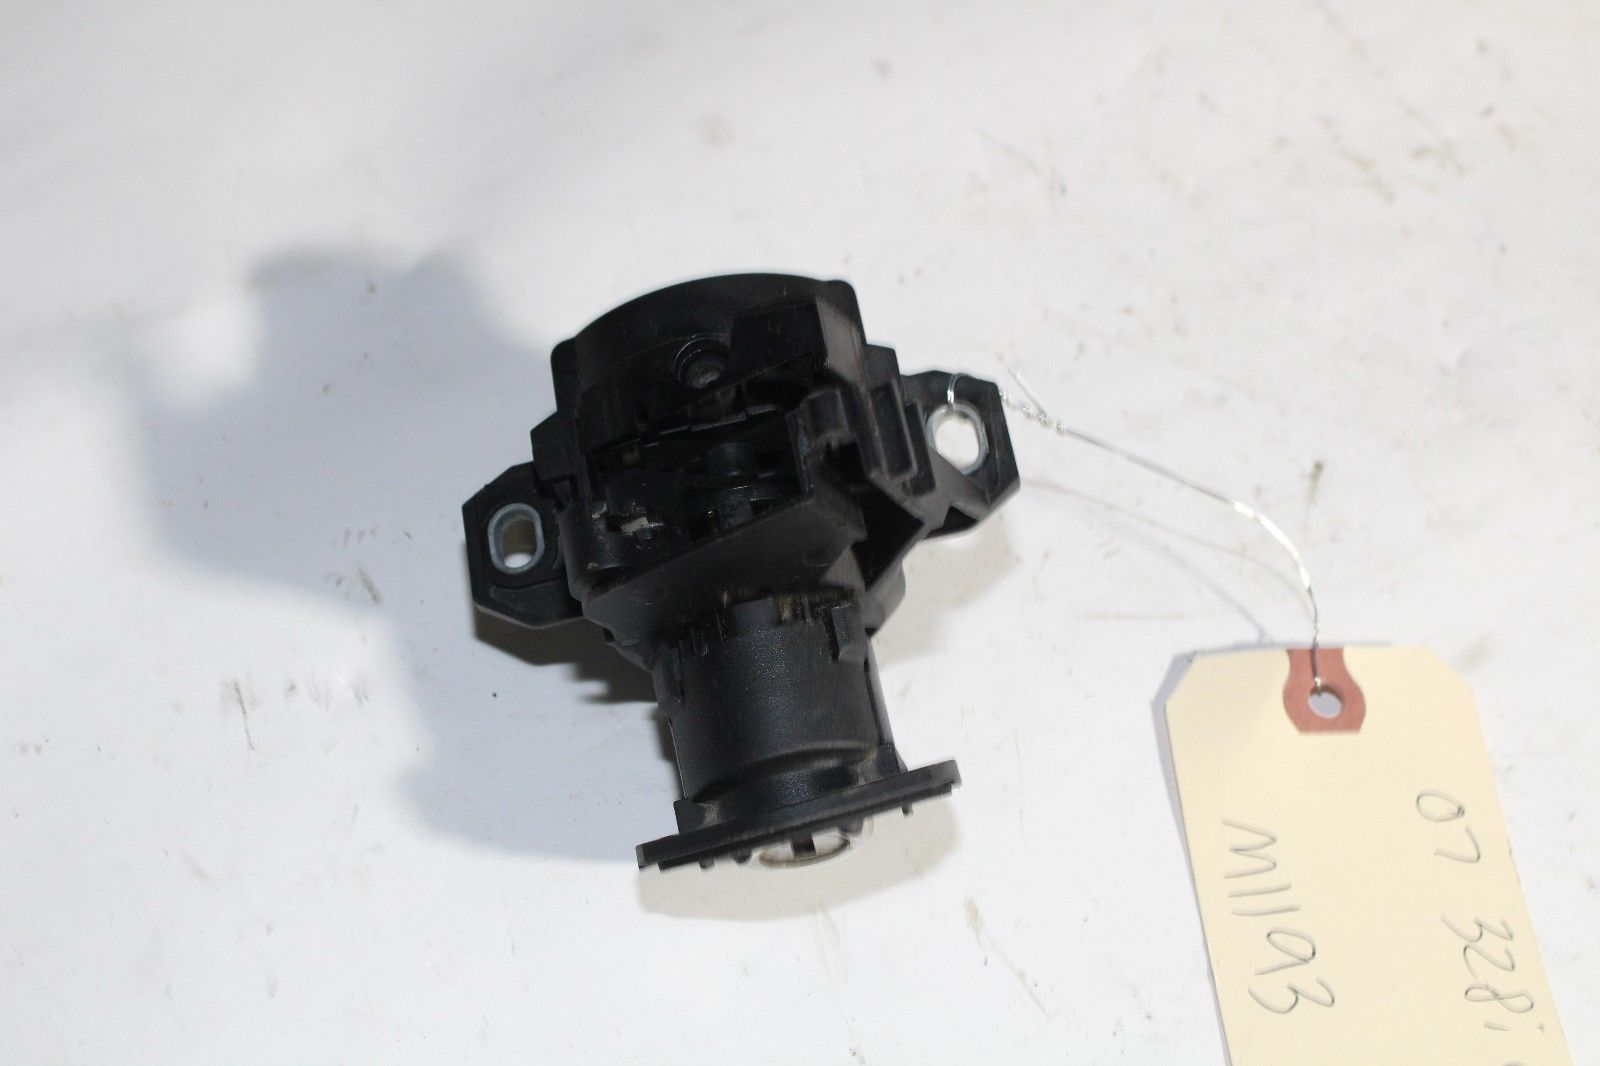 2007-10 E92 BMW 328i COUPE REAR TRUNK LID LOCK CYLINDER ASSY no key M1193